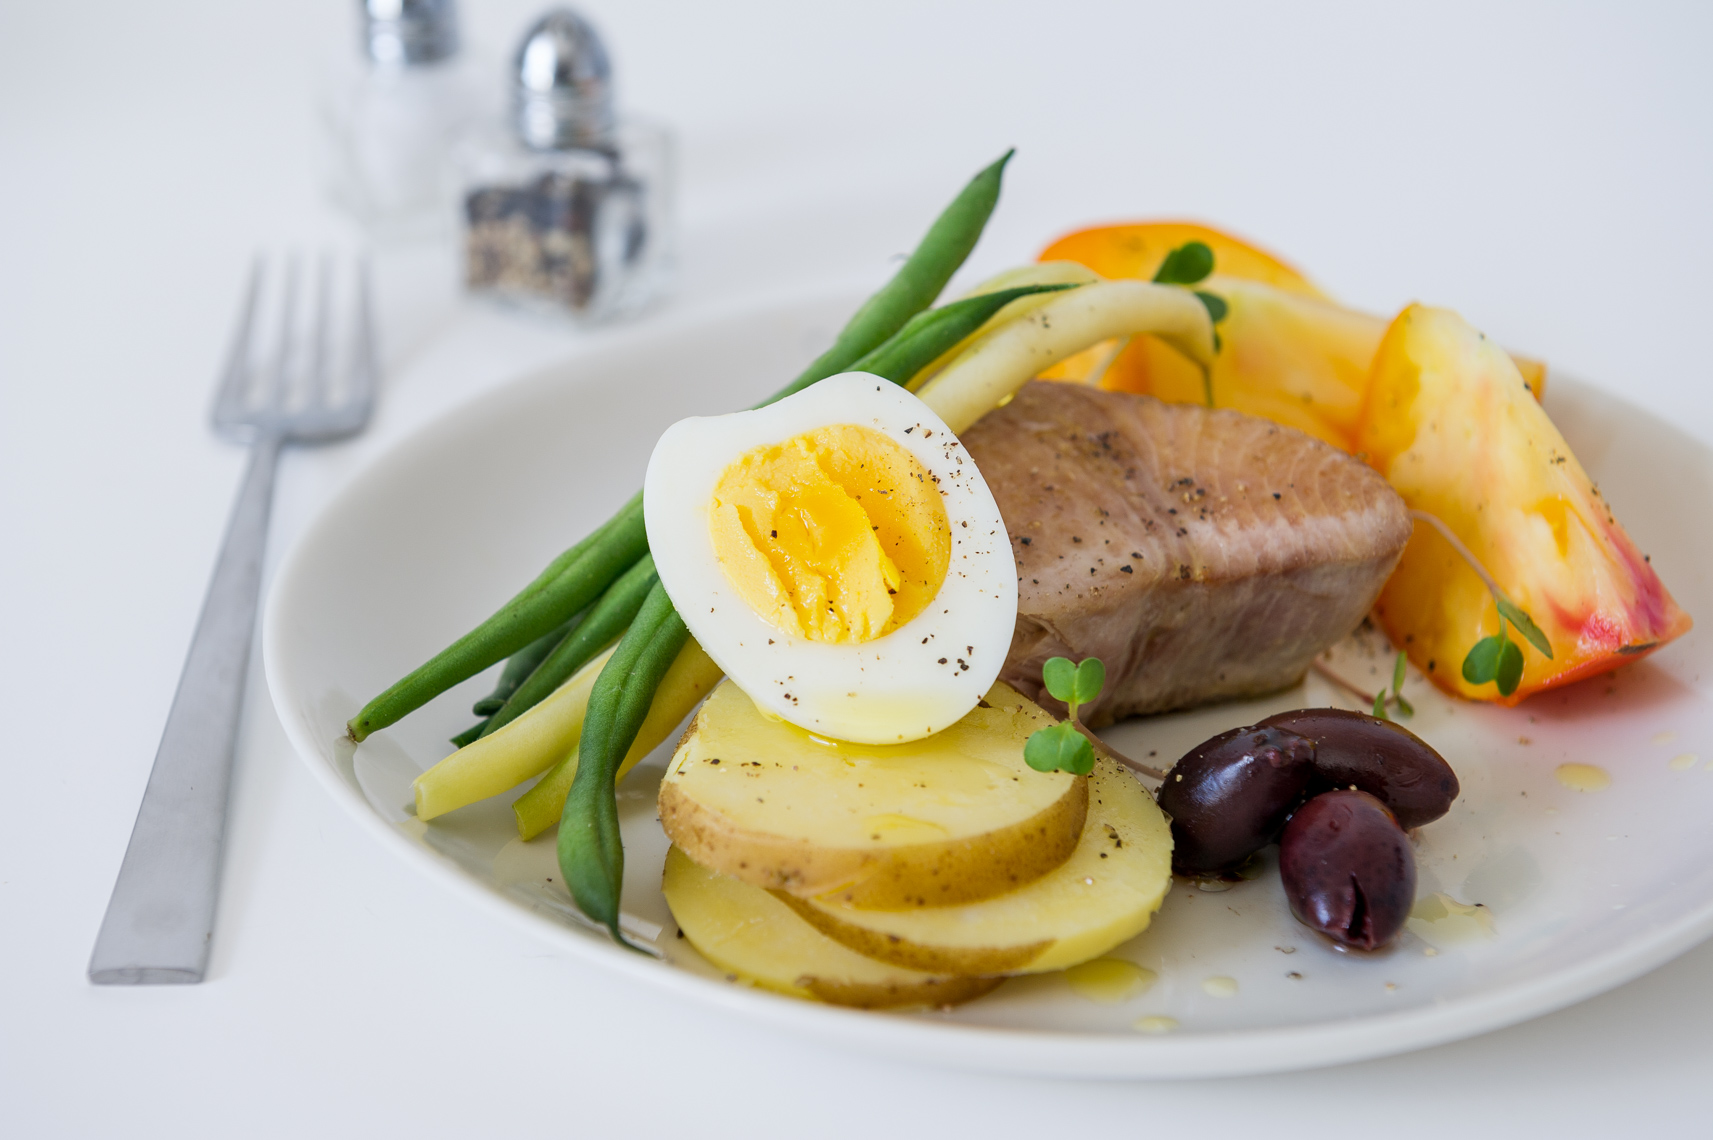 NYC Food Photographer - Tuna Nicoise